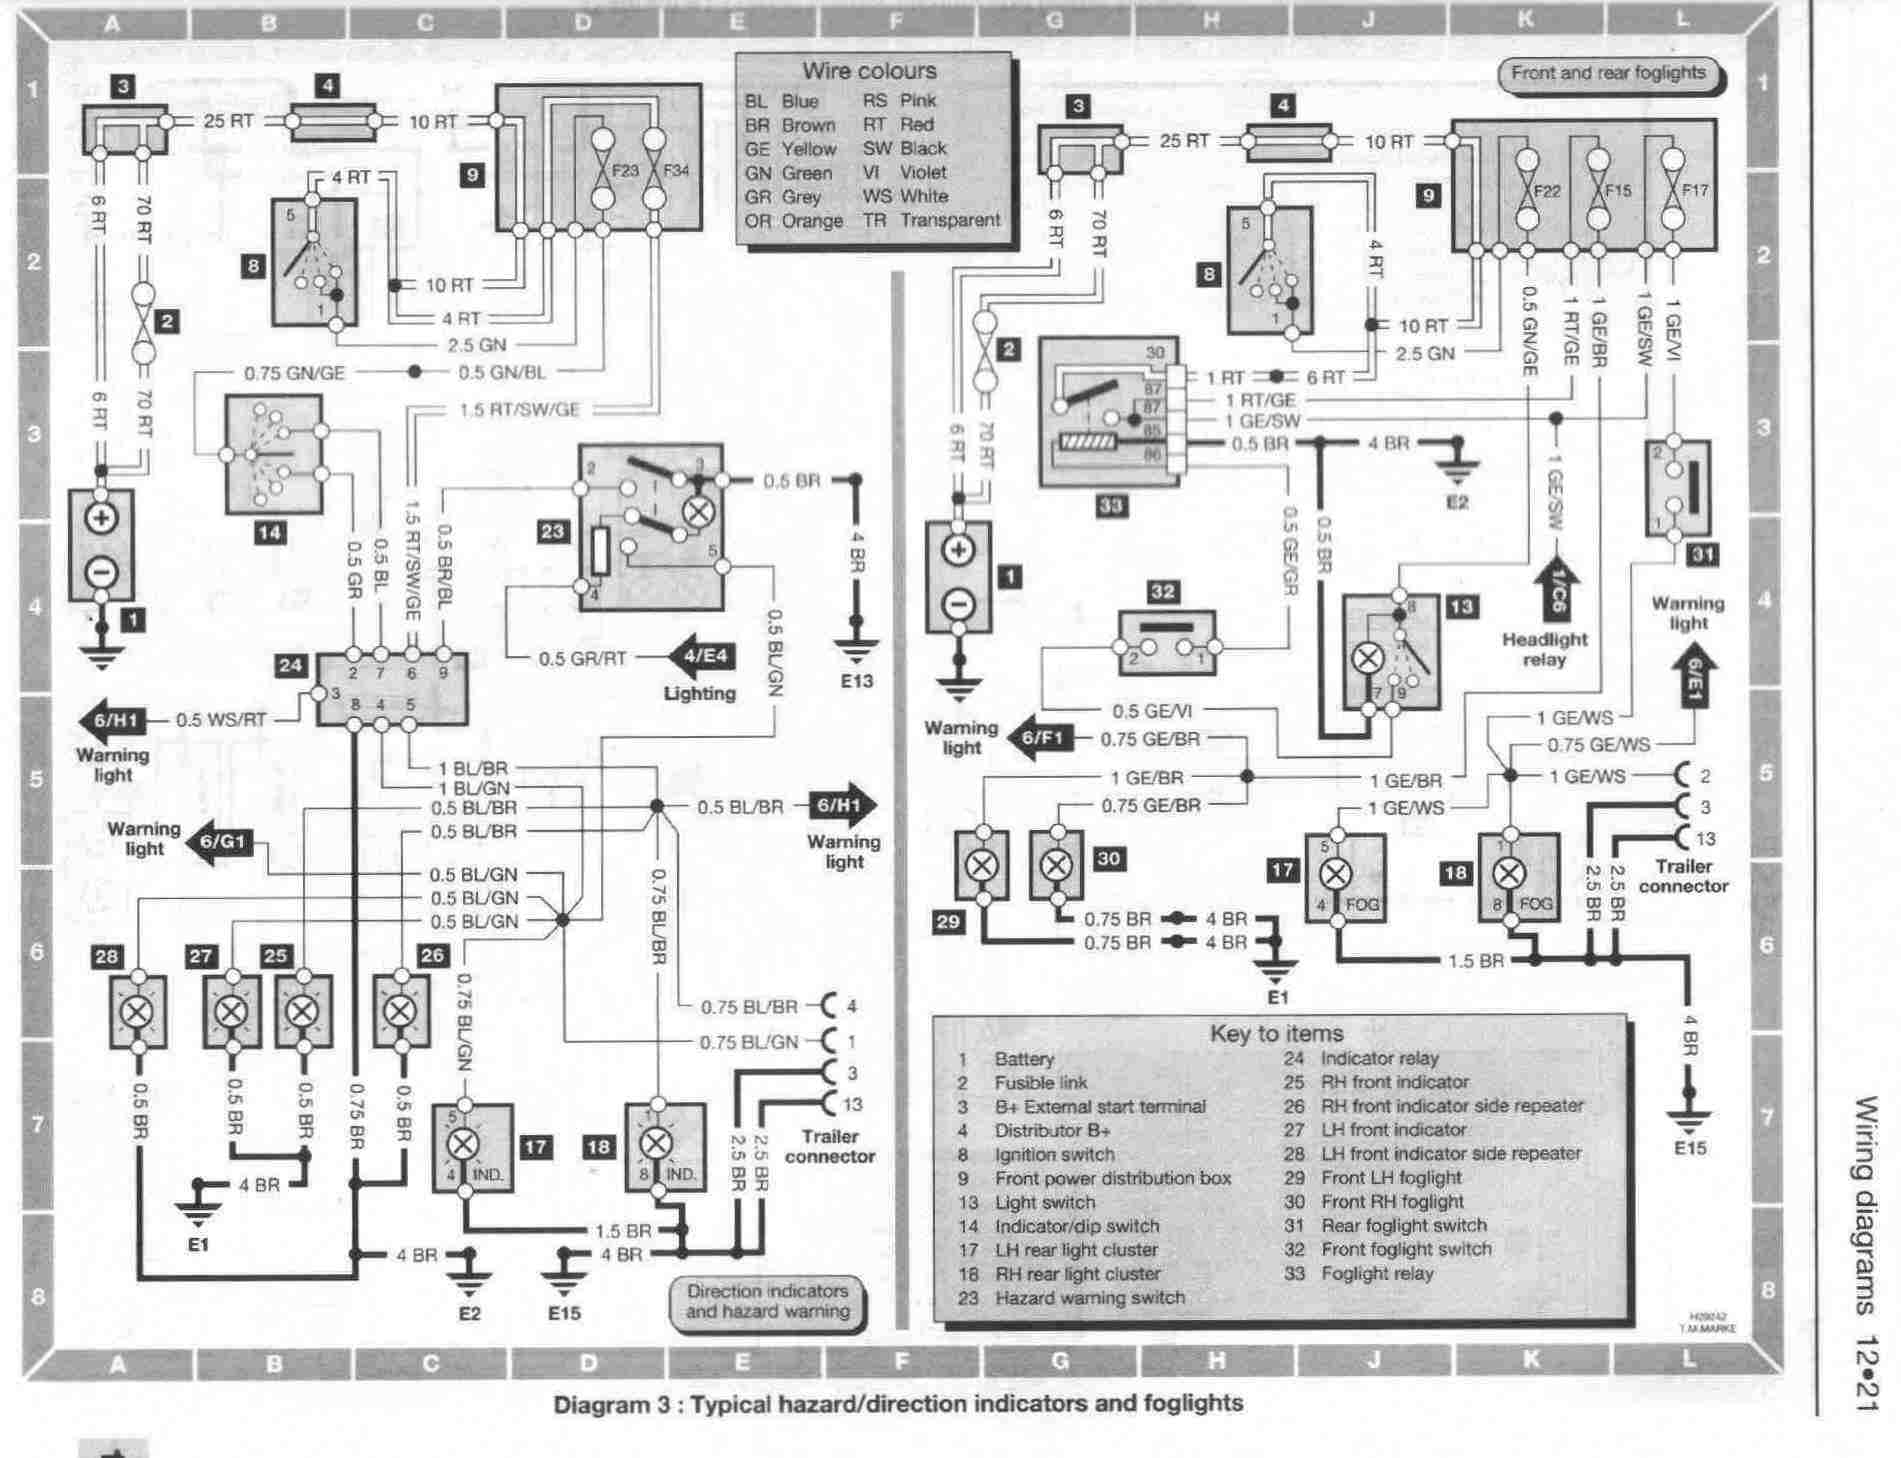 foglamp wiring wiring diagram for international truck the wiring diagram 4900 International Truck Wiring Diagram for Wipers at readyjetset.co